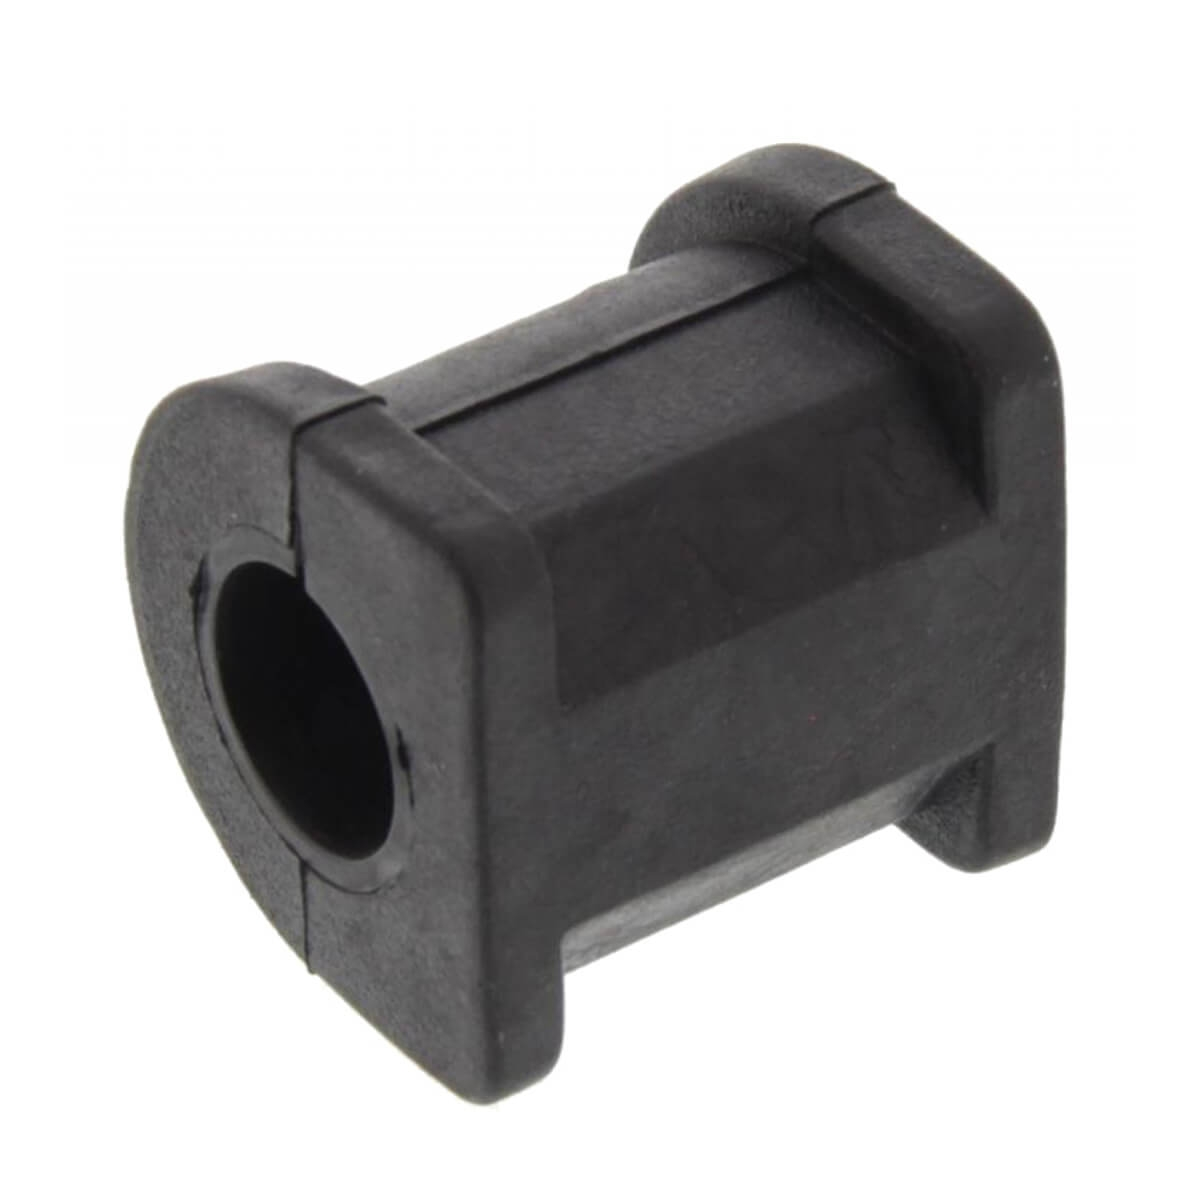 Stabilizer Coupling Mount